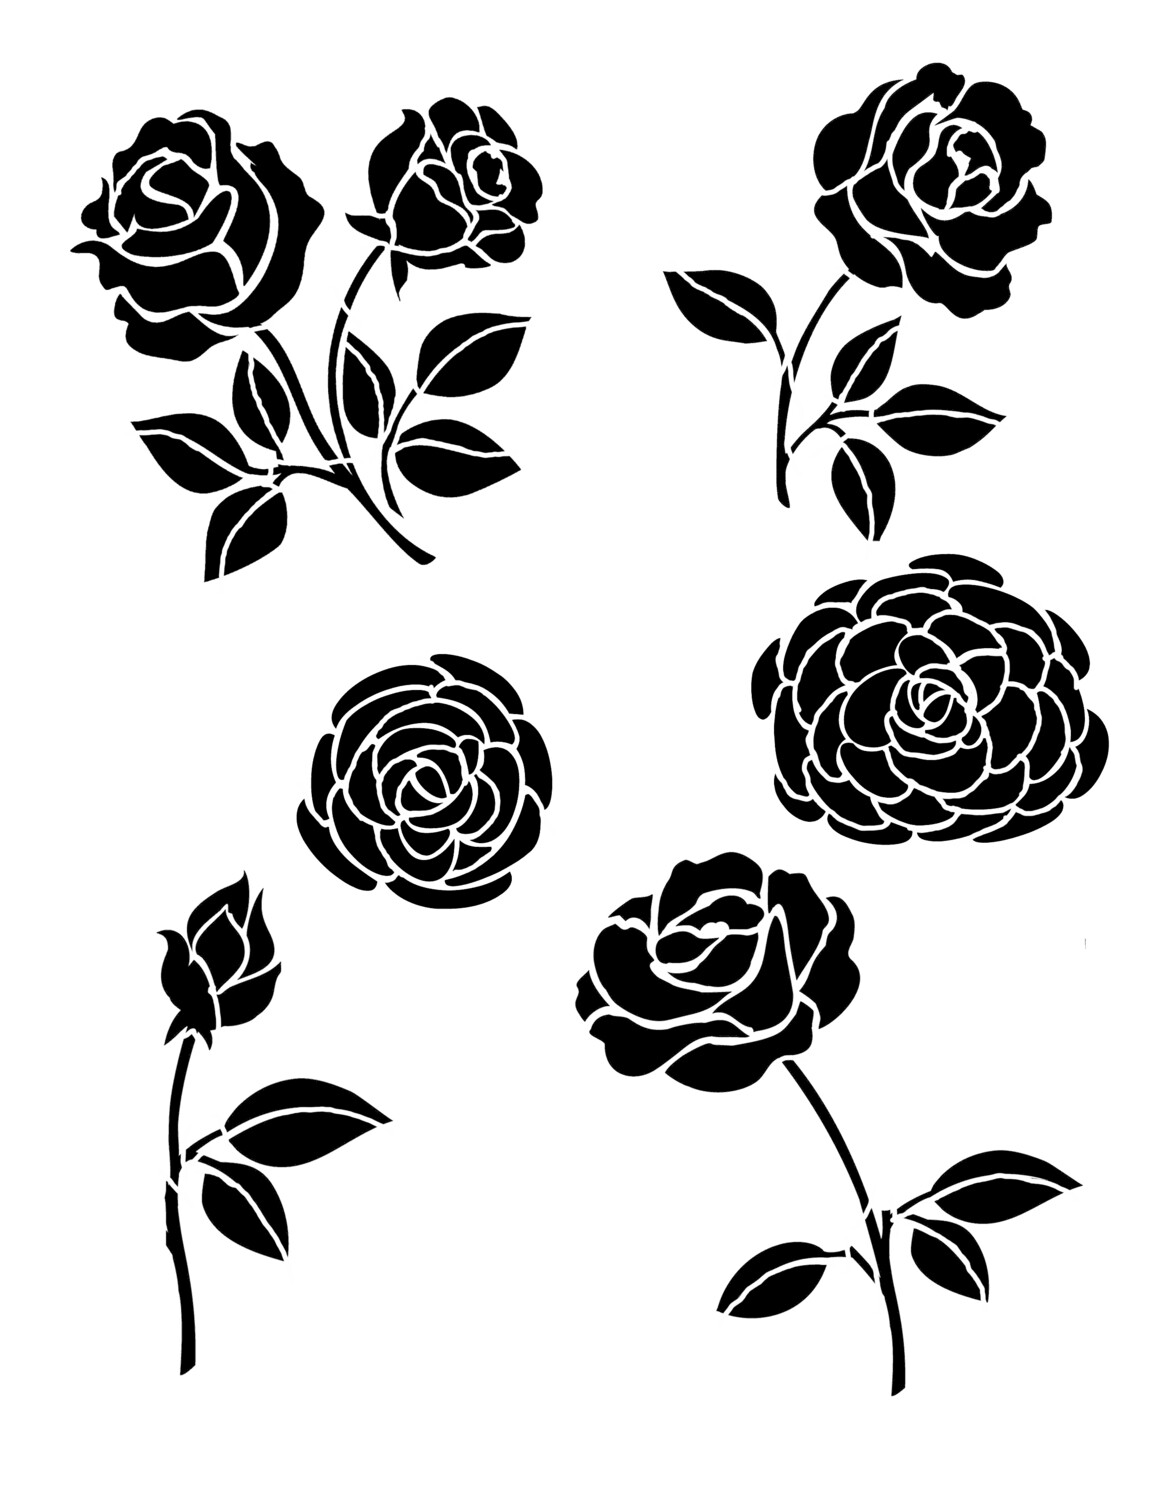 Roses and Peonies Stencil